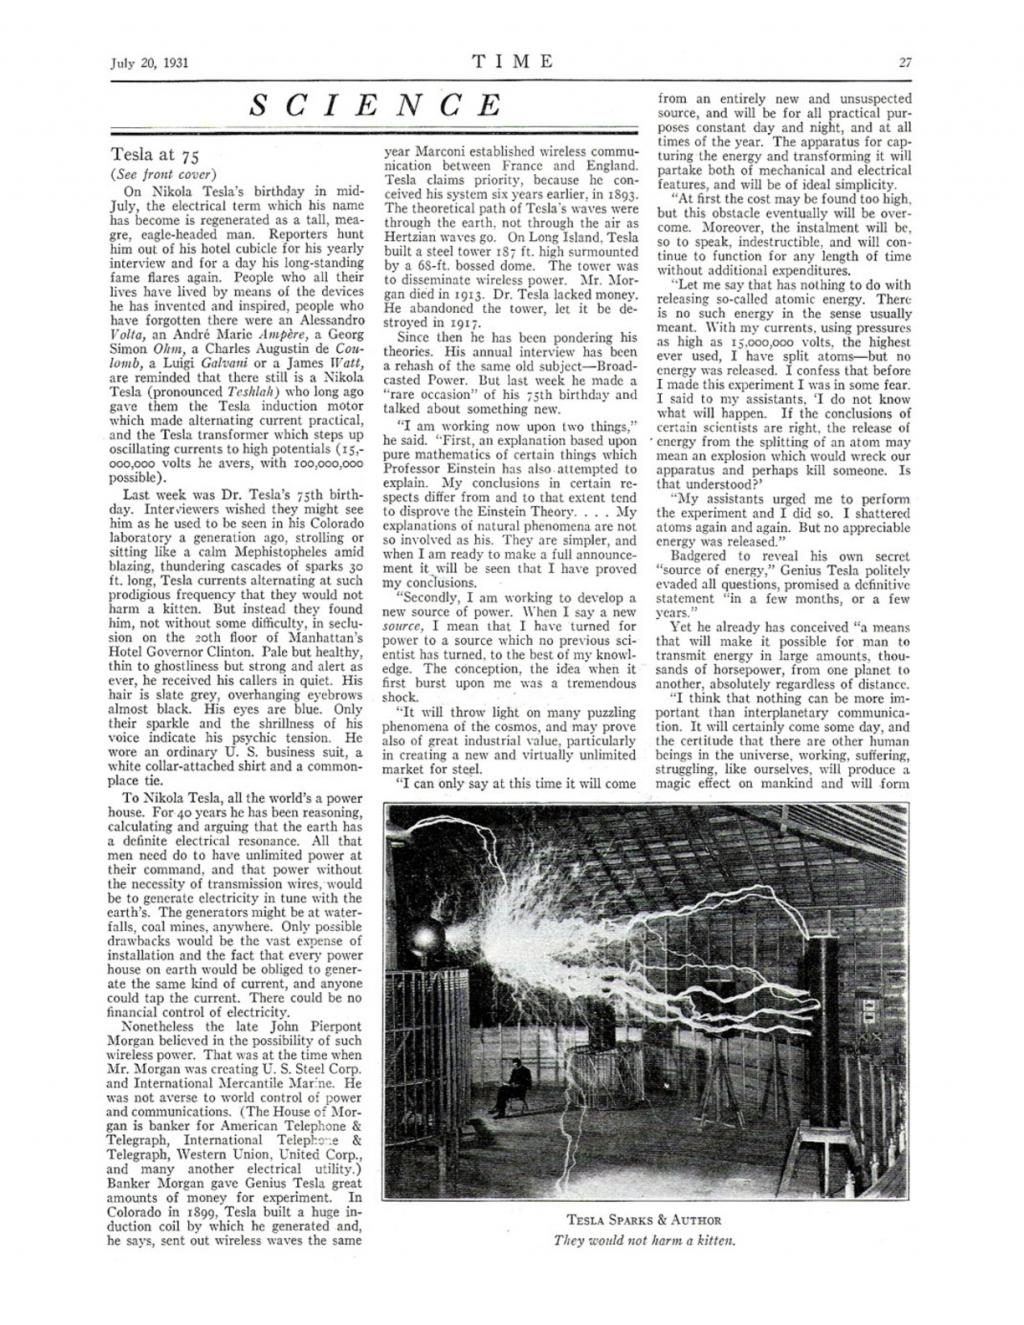 Preview of Nikola Tesla at 75 article